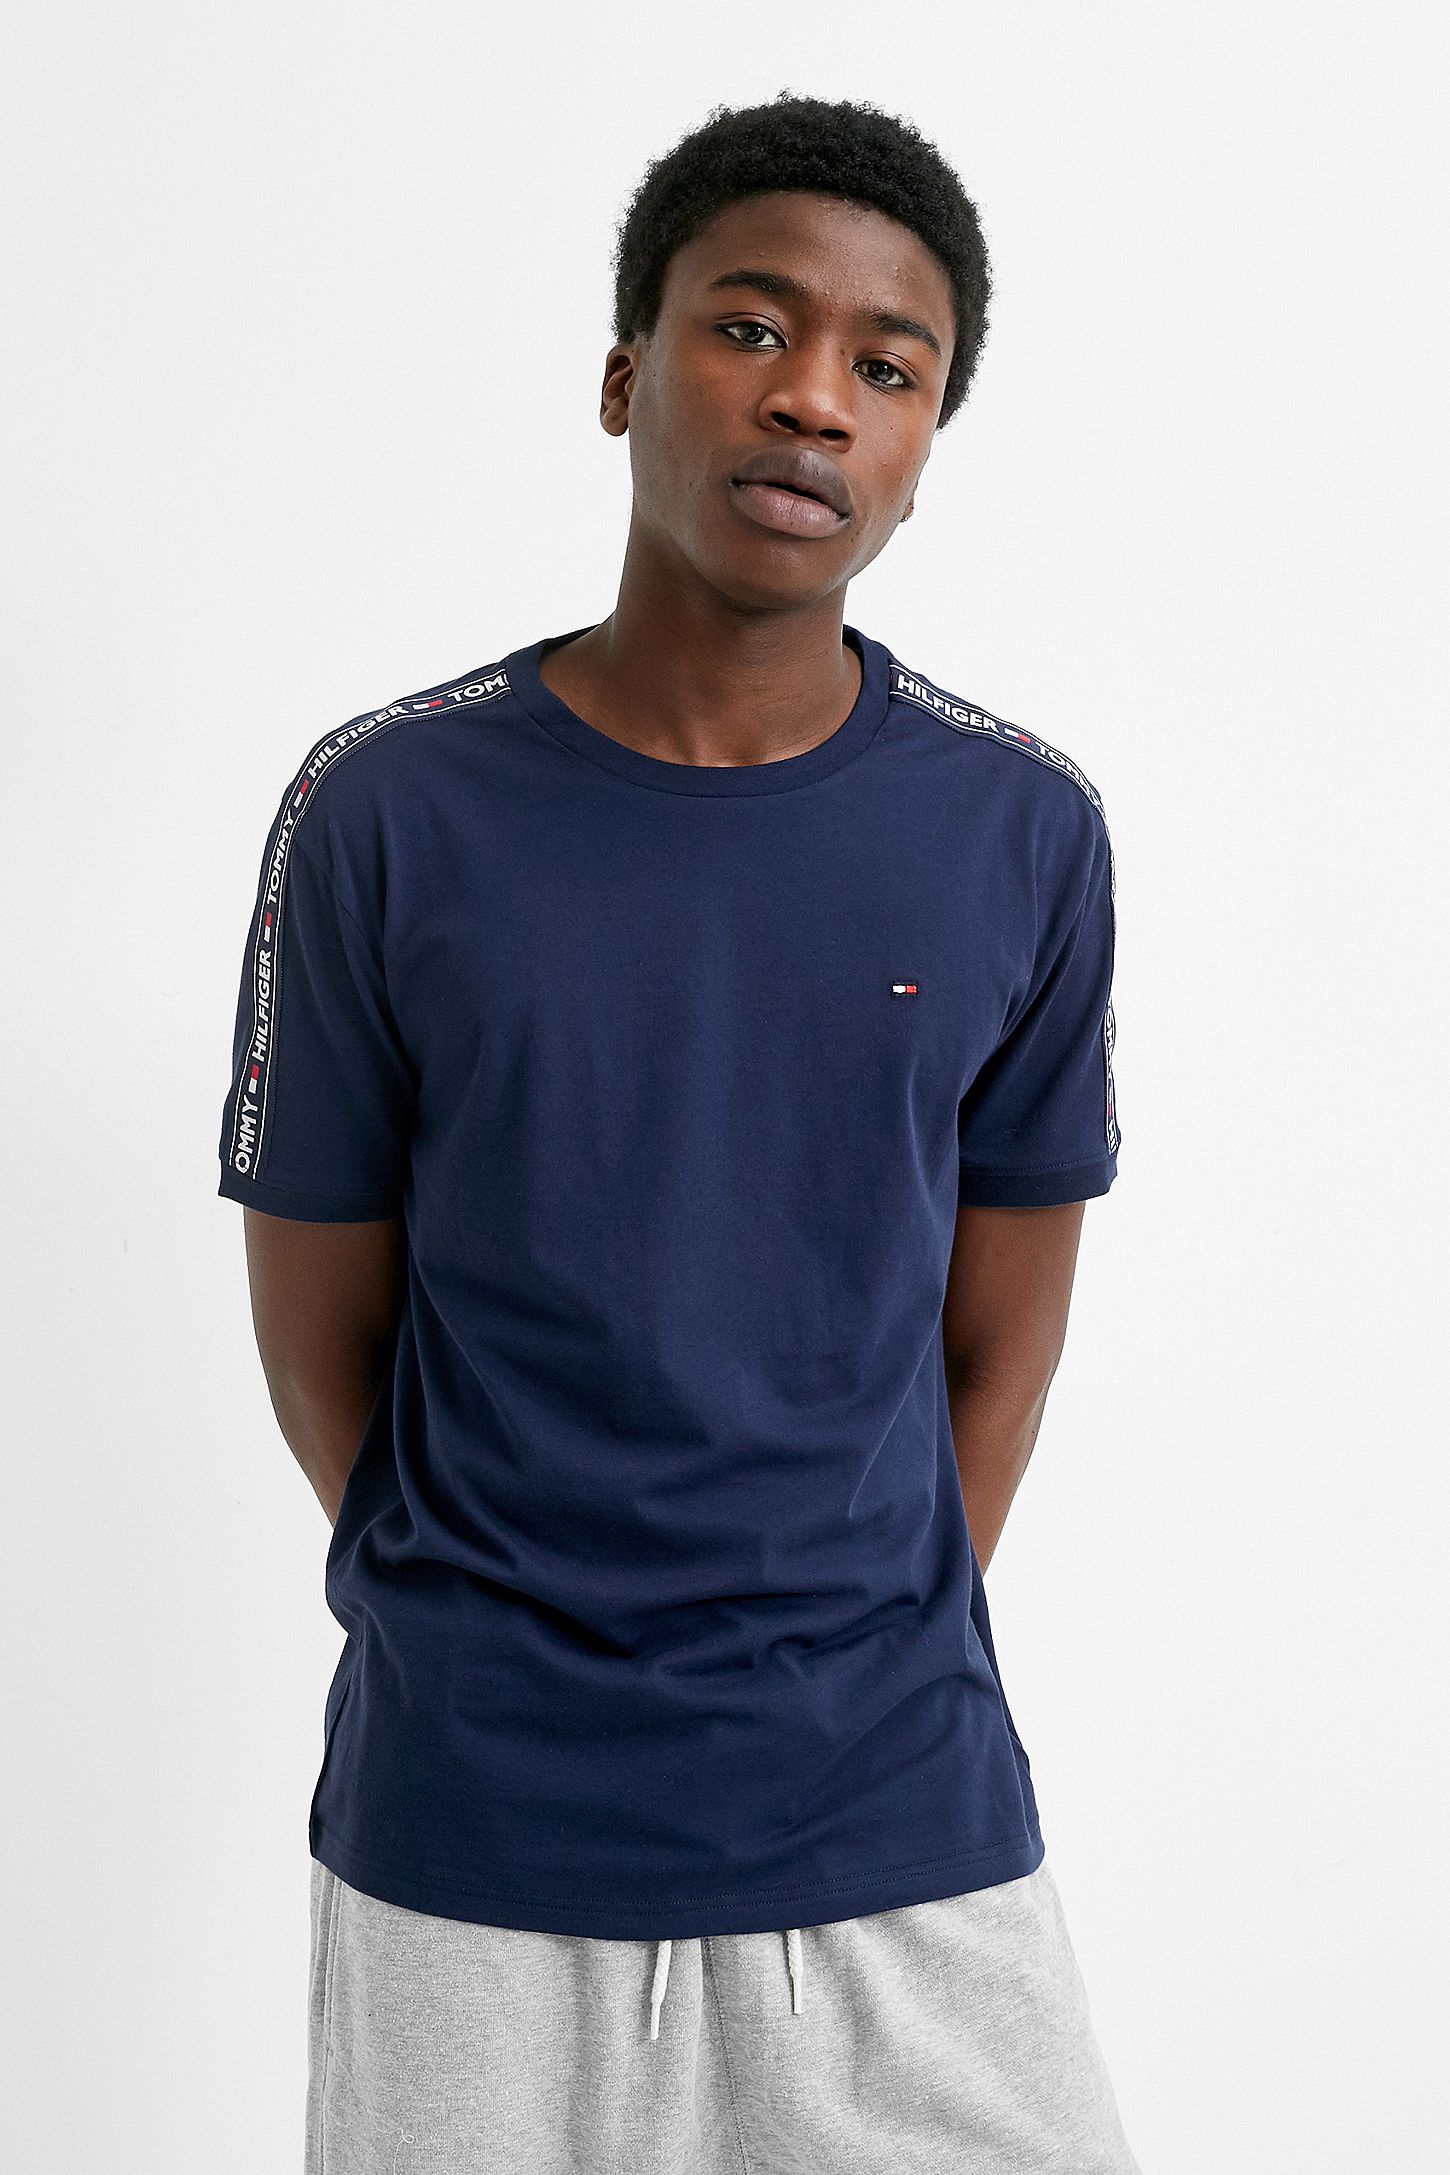 409a64da3 Tommy Hilfiger Taped Sleeve Navy T-Shirt | Urban Outfitters UK